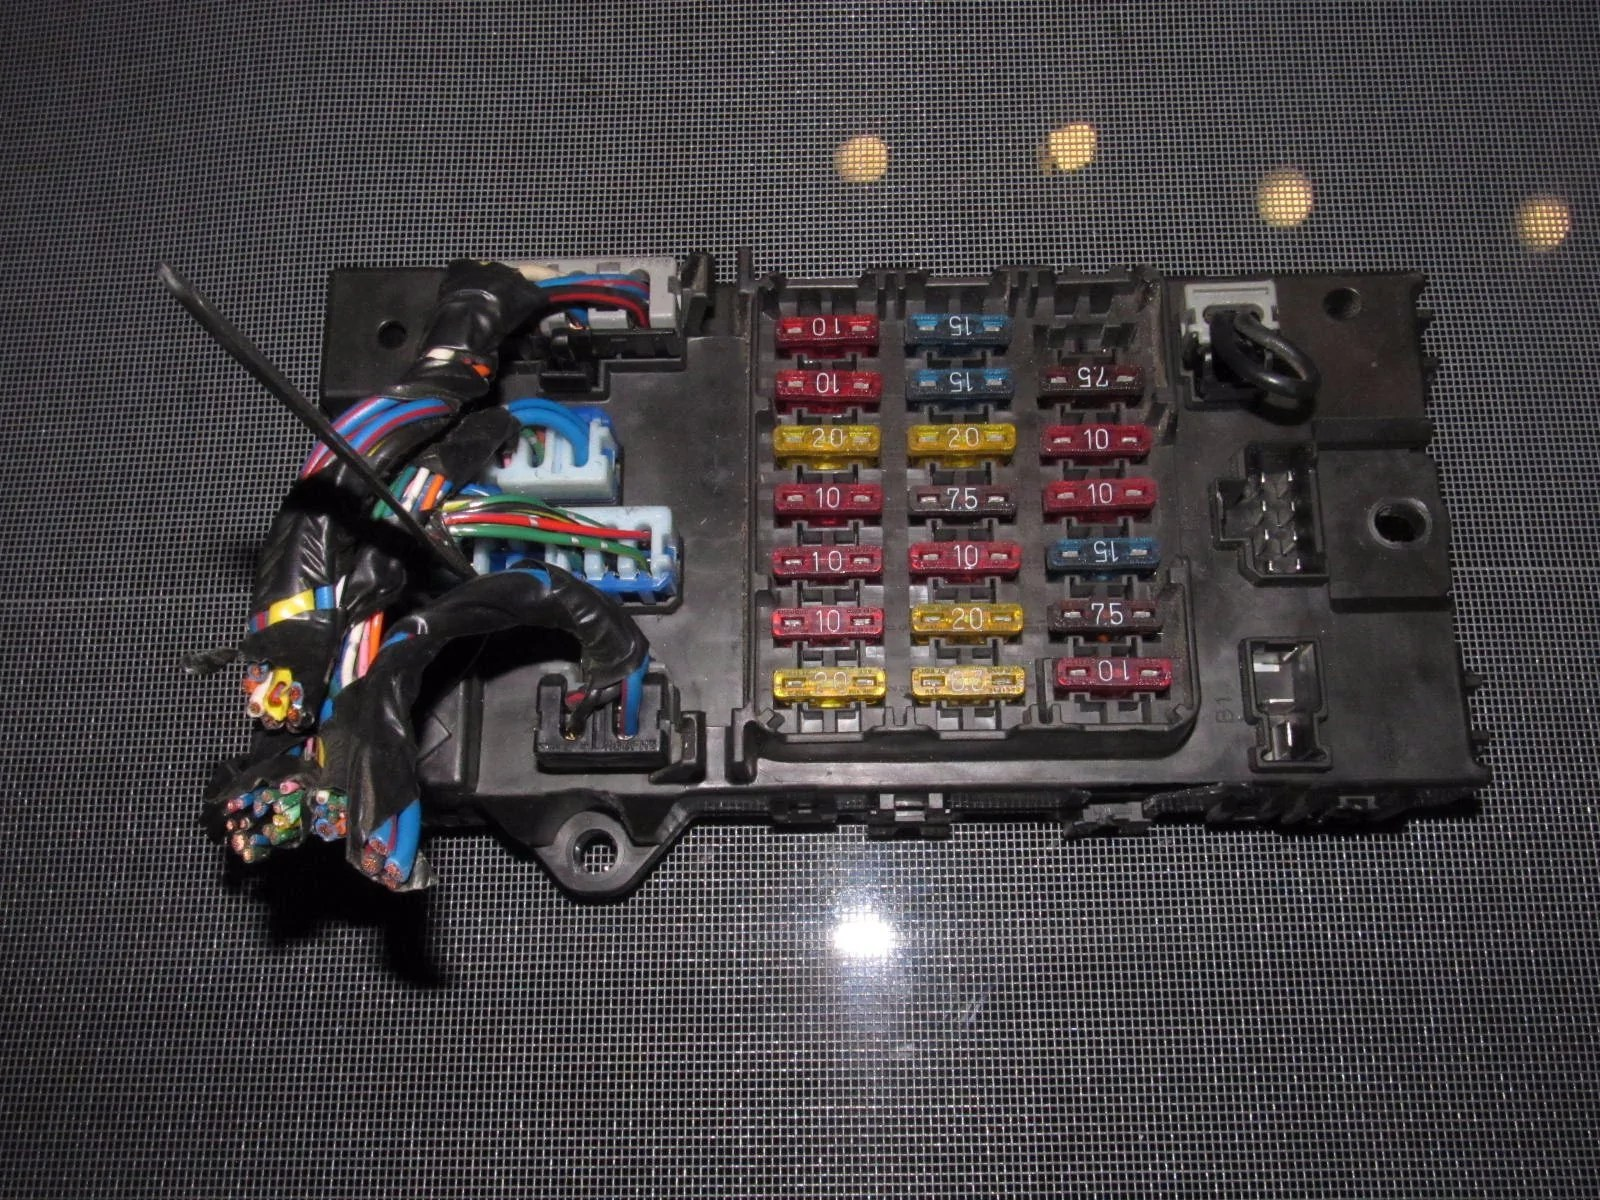 300zx tt fuse box wiring diagram blogs 90 96 300zx interior fuse box relay panel dash [ 1600 x 1200 Pixel ]